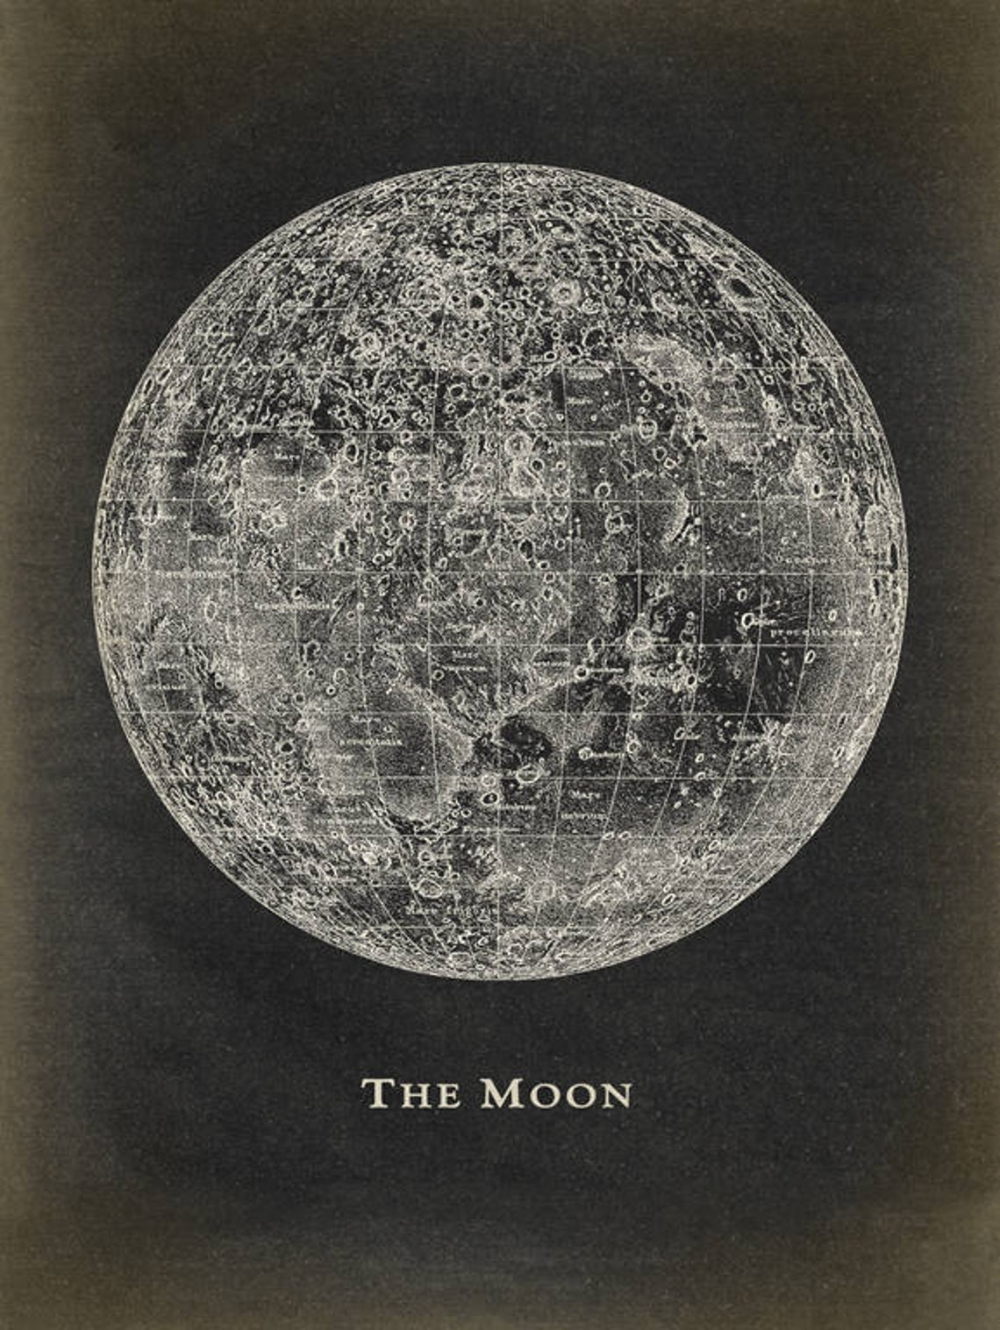 Moon Poster Art Print Astronomy Decor Astronomy Poster Celestial Wall Art Dorm Wall Decor Lunar Moon Craters Fast Track Shipping Astronomy Poster Vintage Astronomy Prints Moon Poster